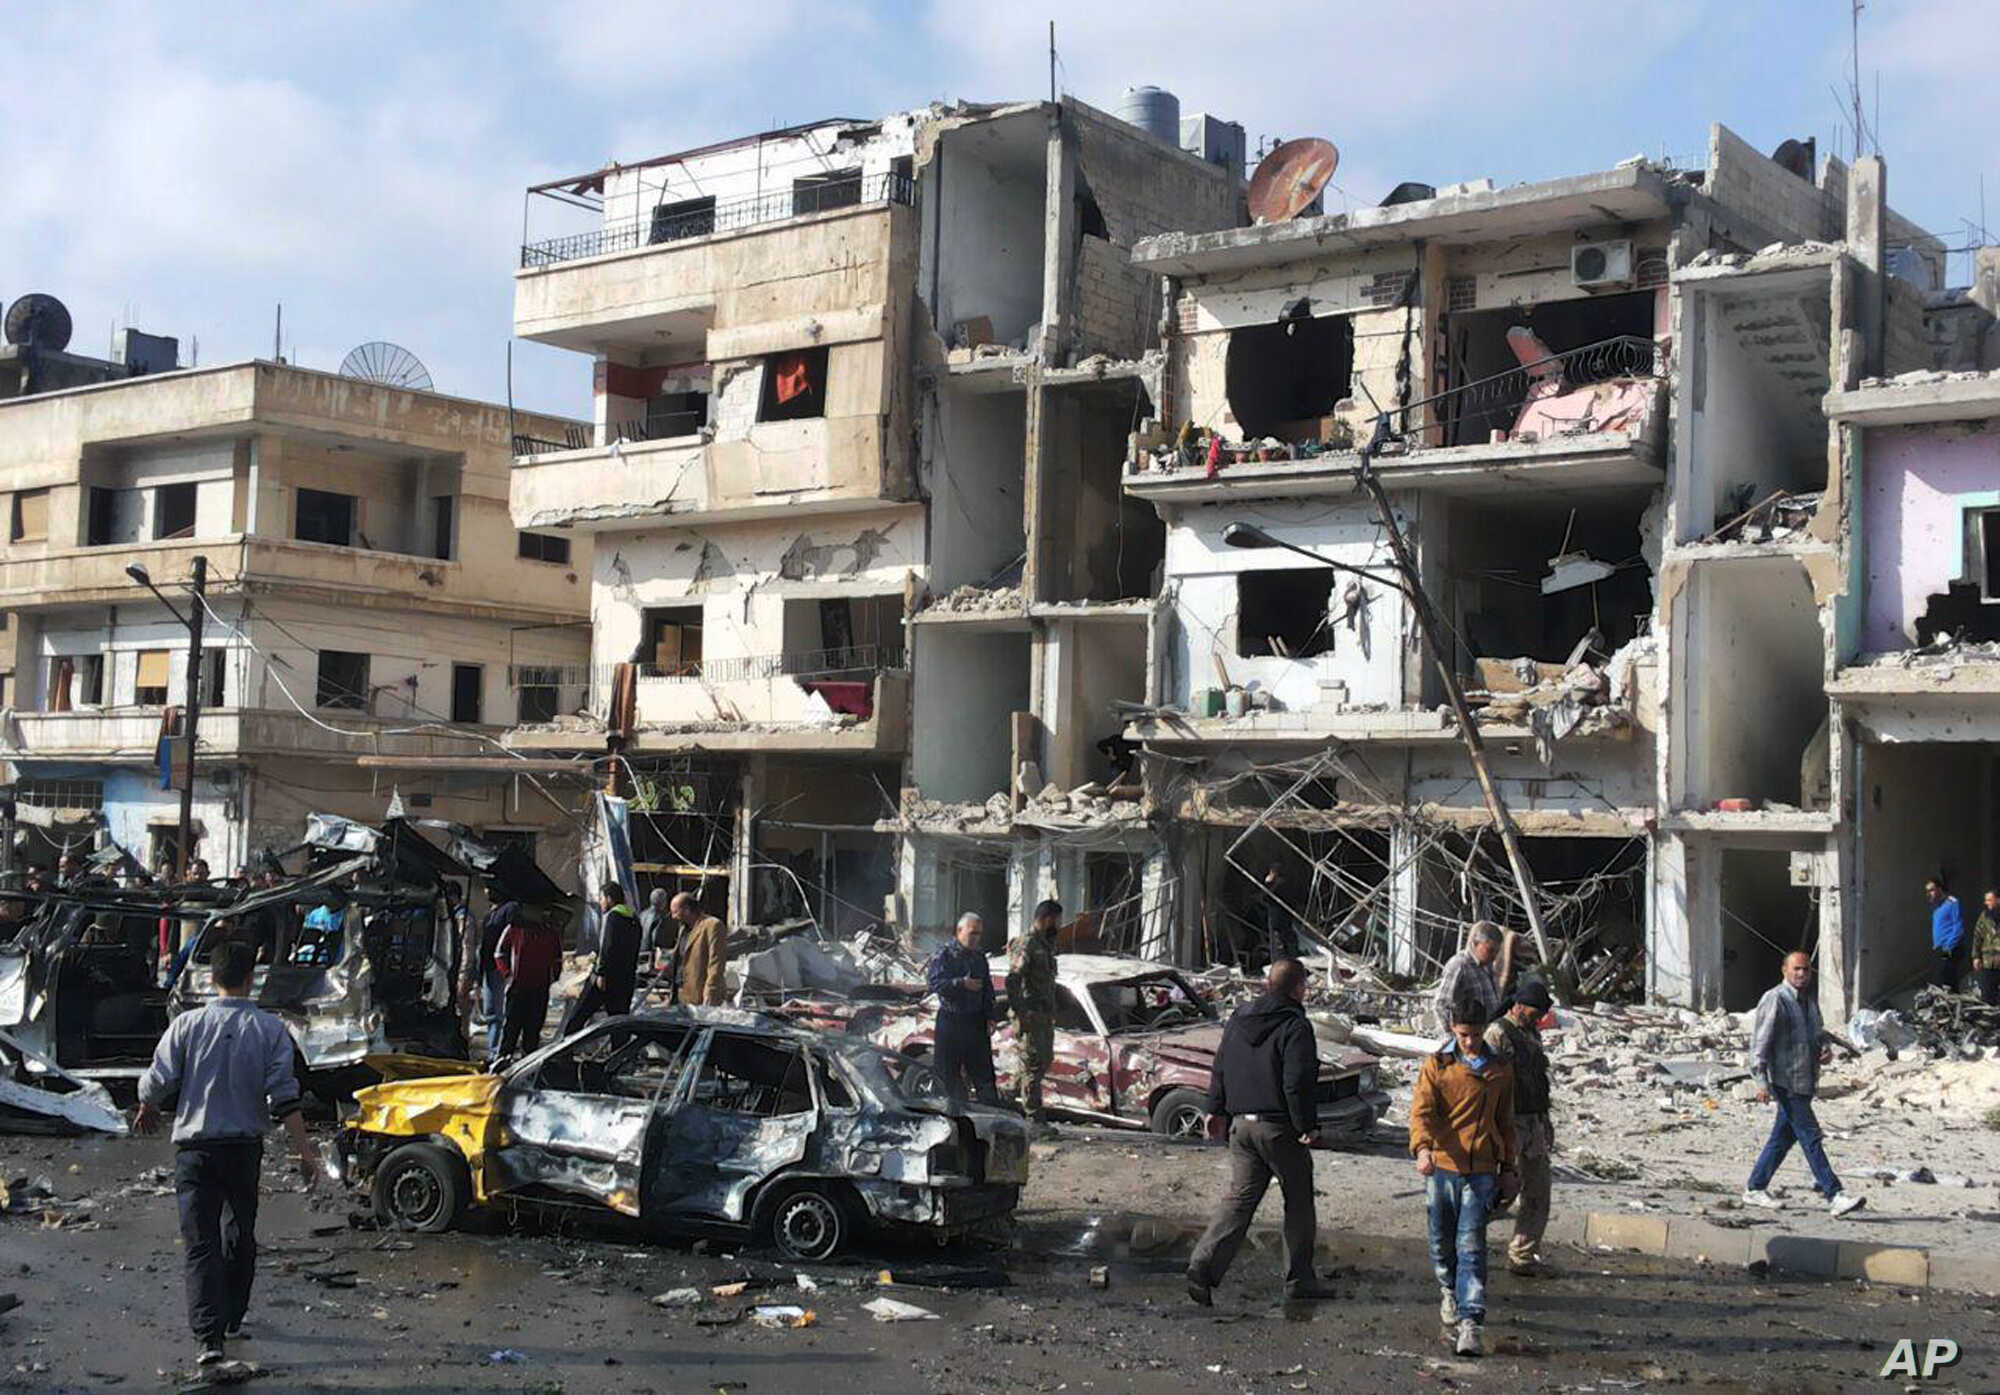 Syrian citizens gather at the scene where two blasts exploded in the pro-government neighborhood of Zahraa, in Homs province, Syria, Feb. 21, 2016. The Islamic State group claimed responsibility for this and another attack Sunday.